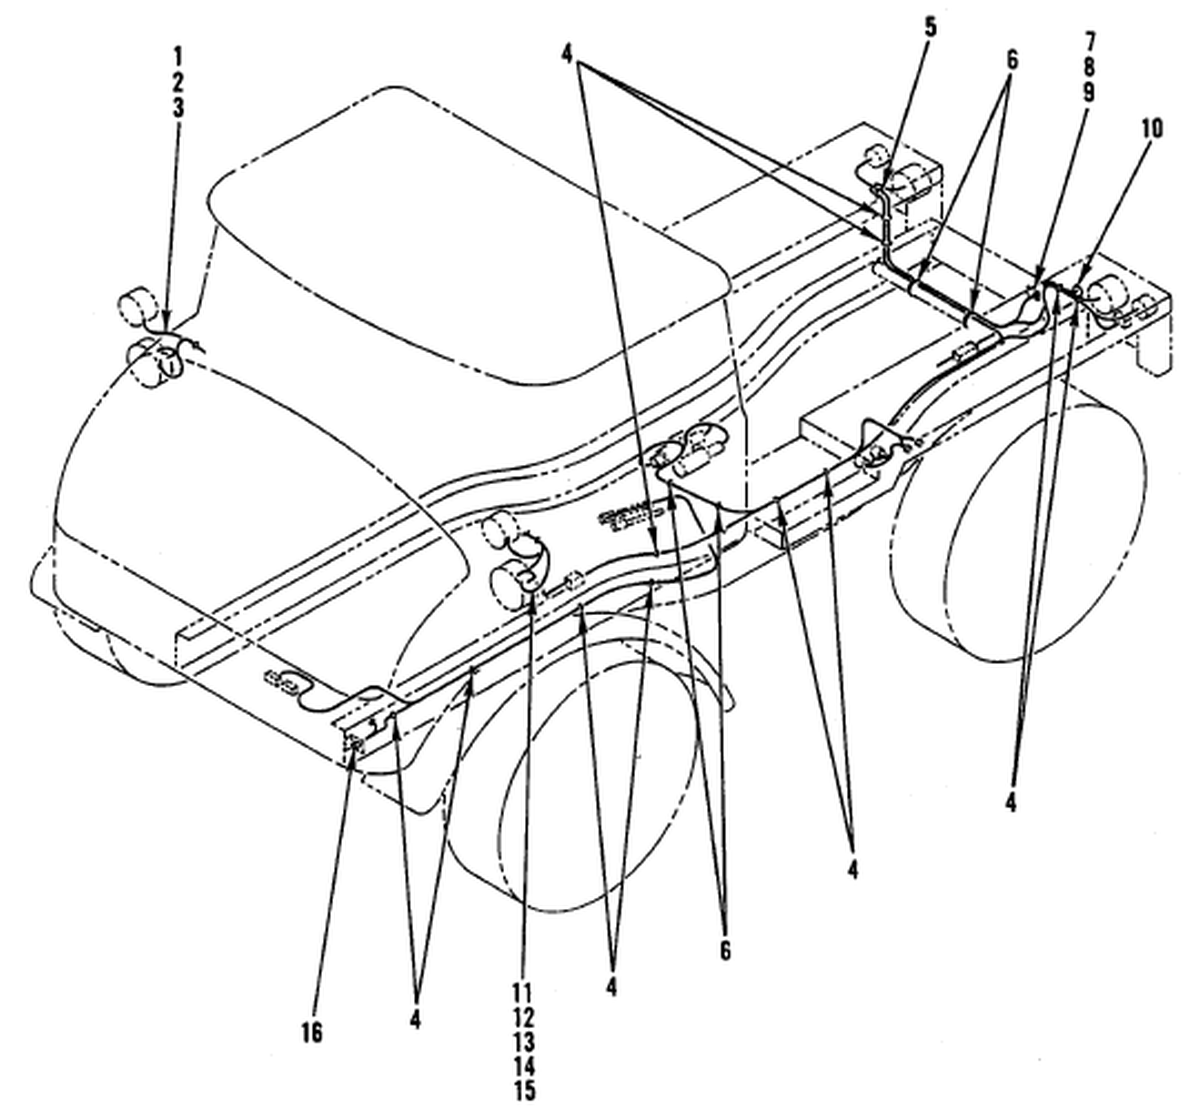 0085 00-2 Figure 84. Hull or Chassis Wiring Harness